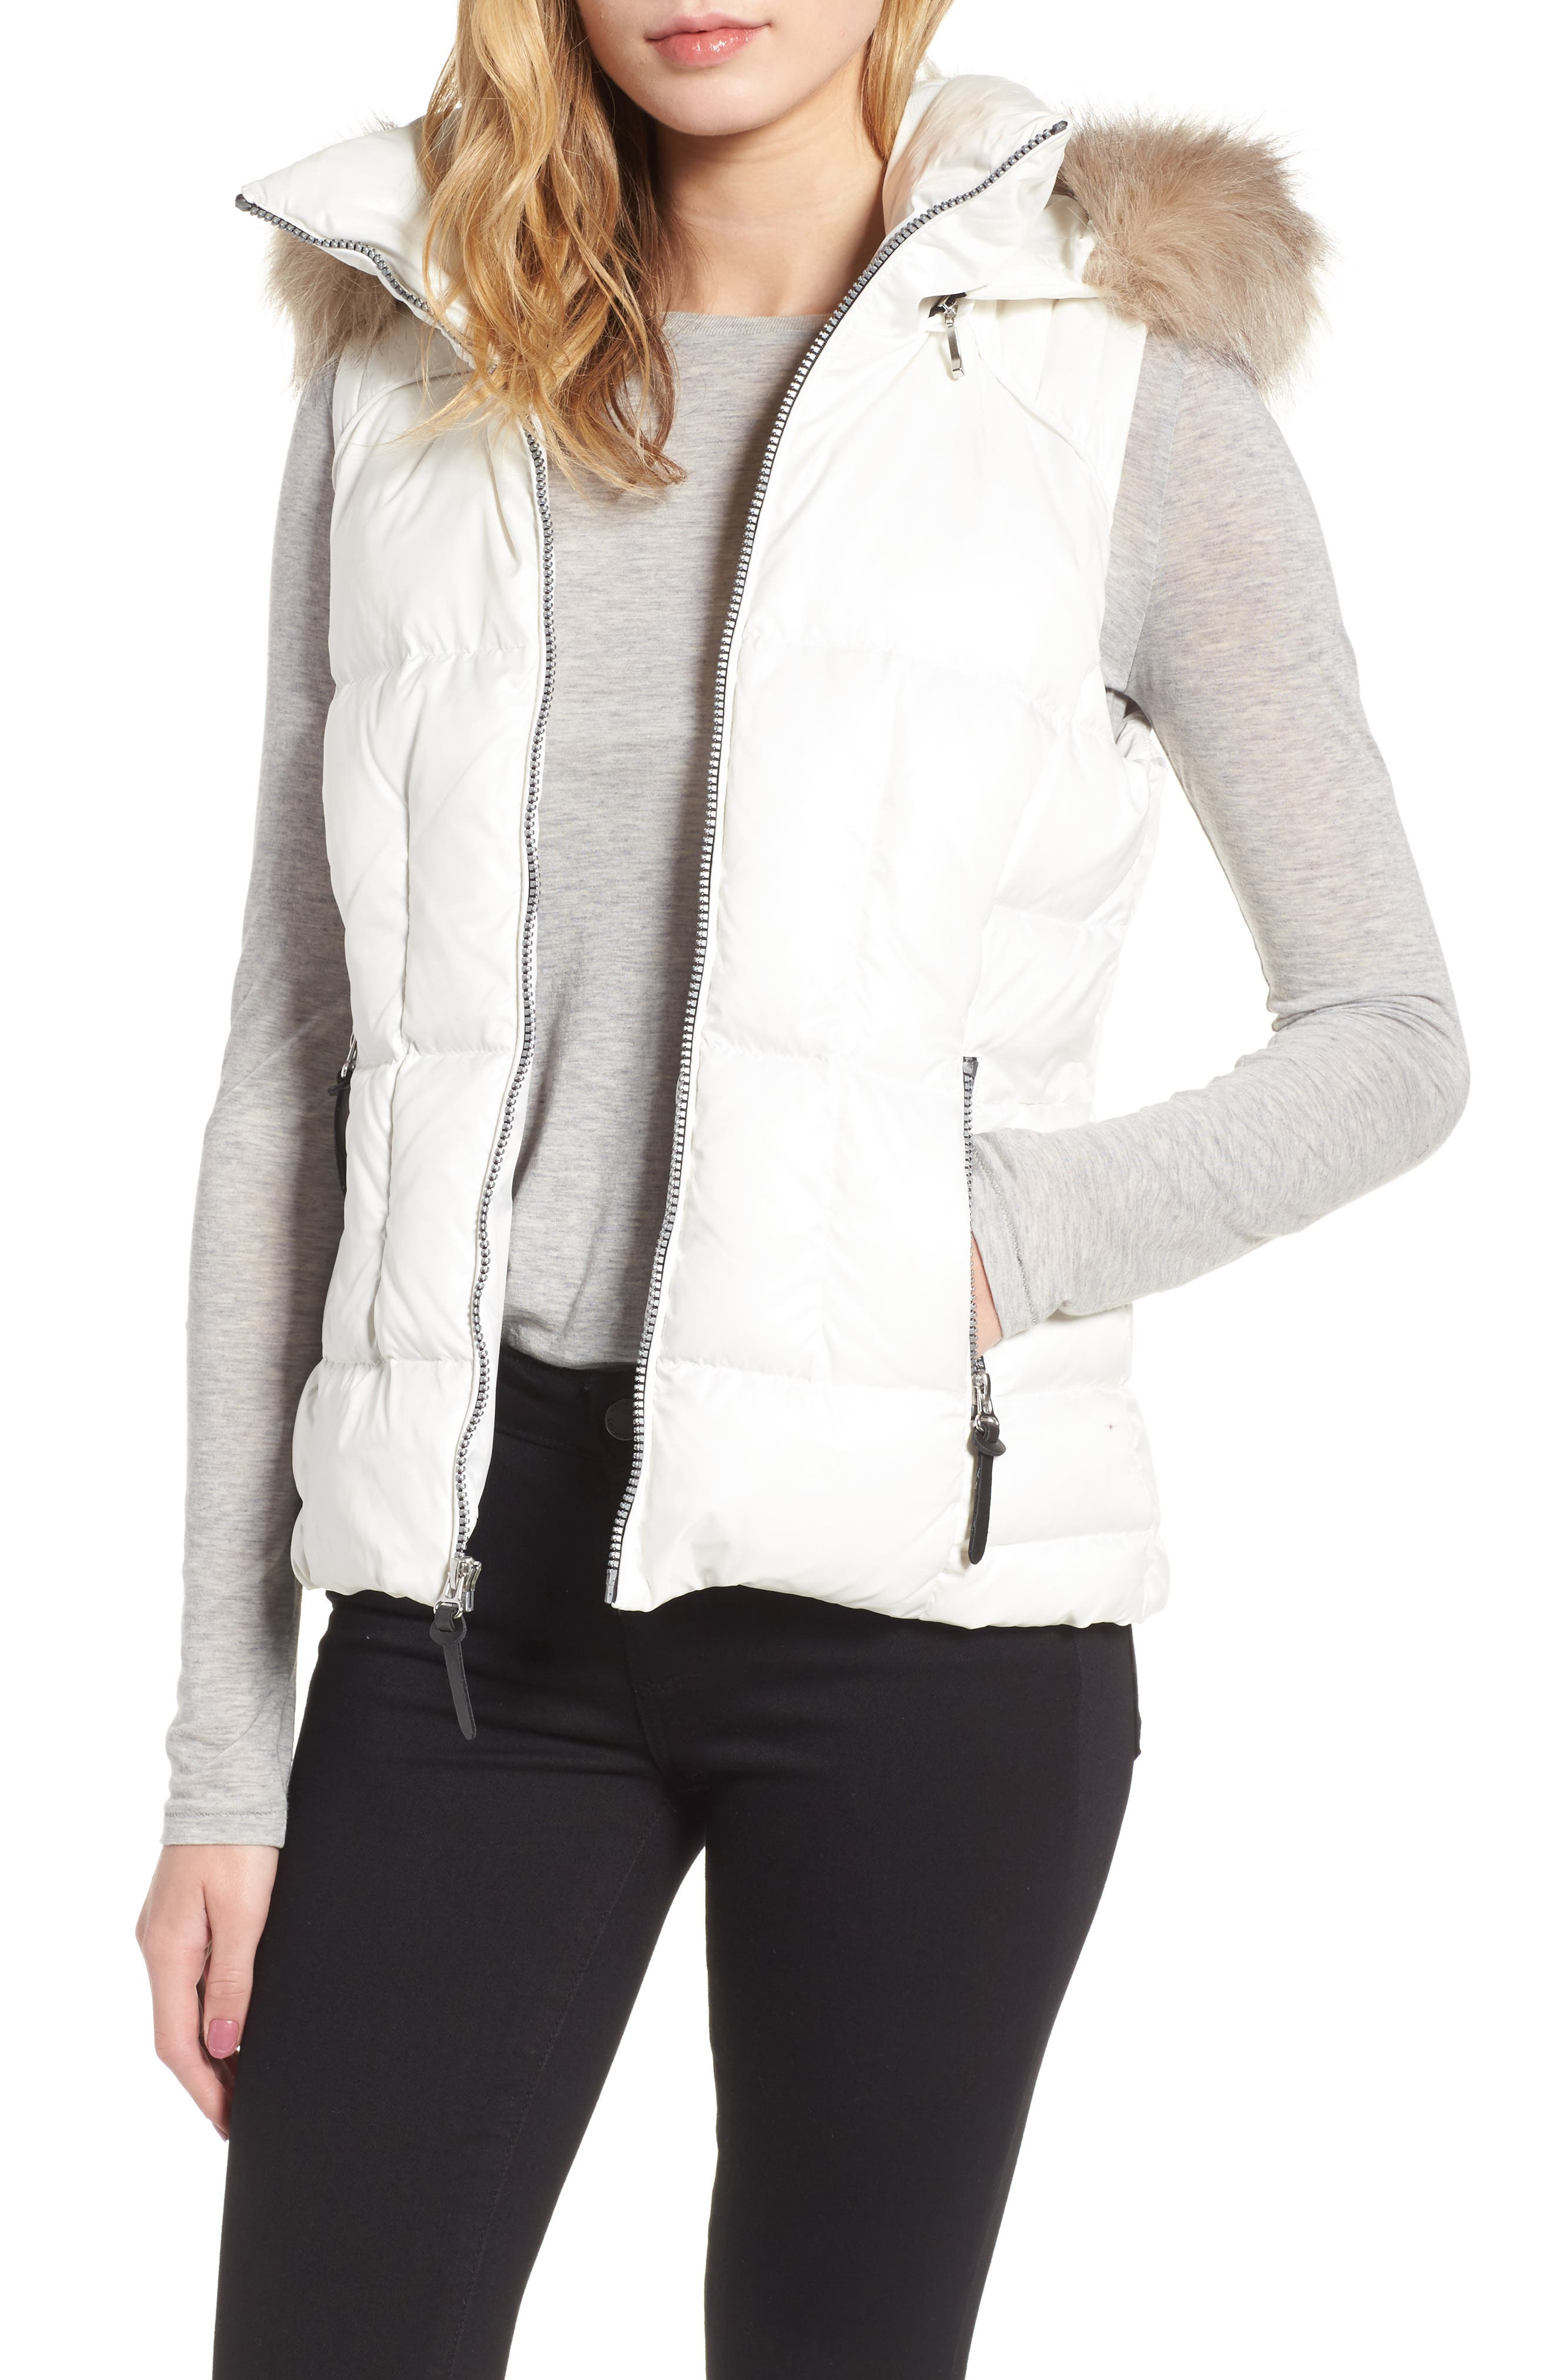 Alternate Image 1 Selected - Andrew Marc Lanie Puffer Vest with Faux Fur